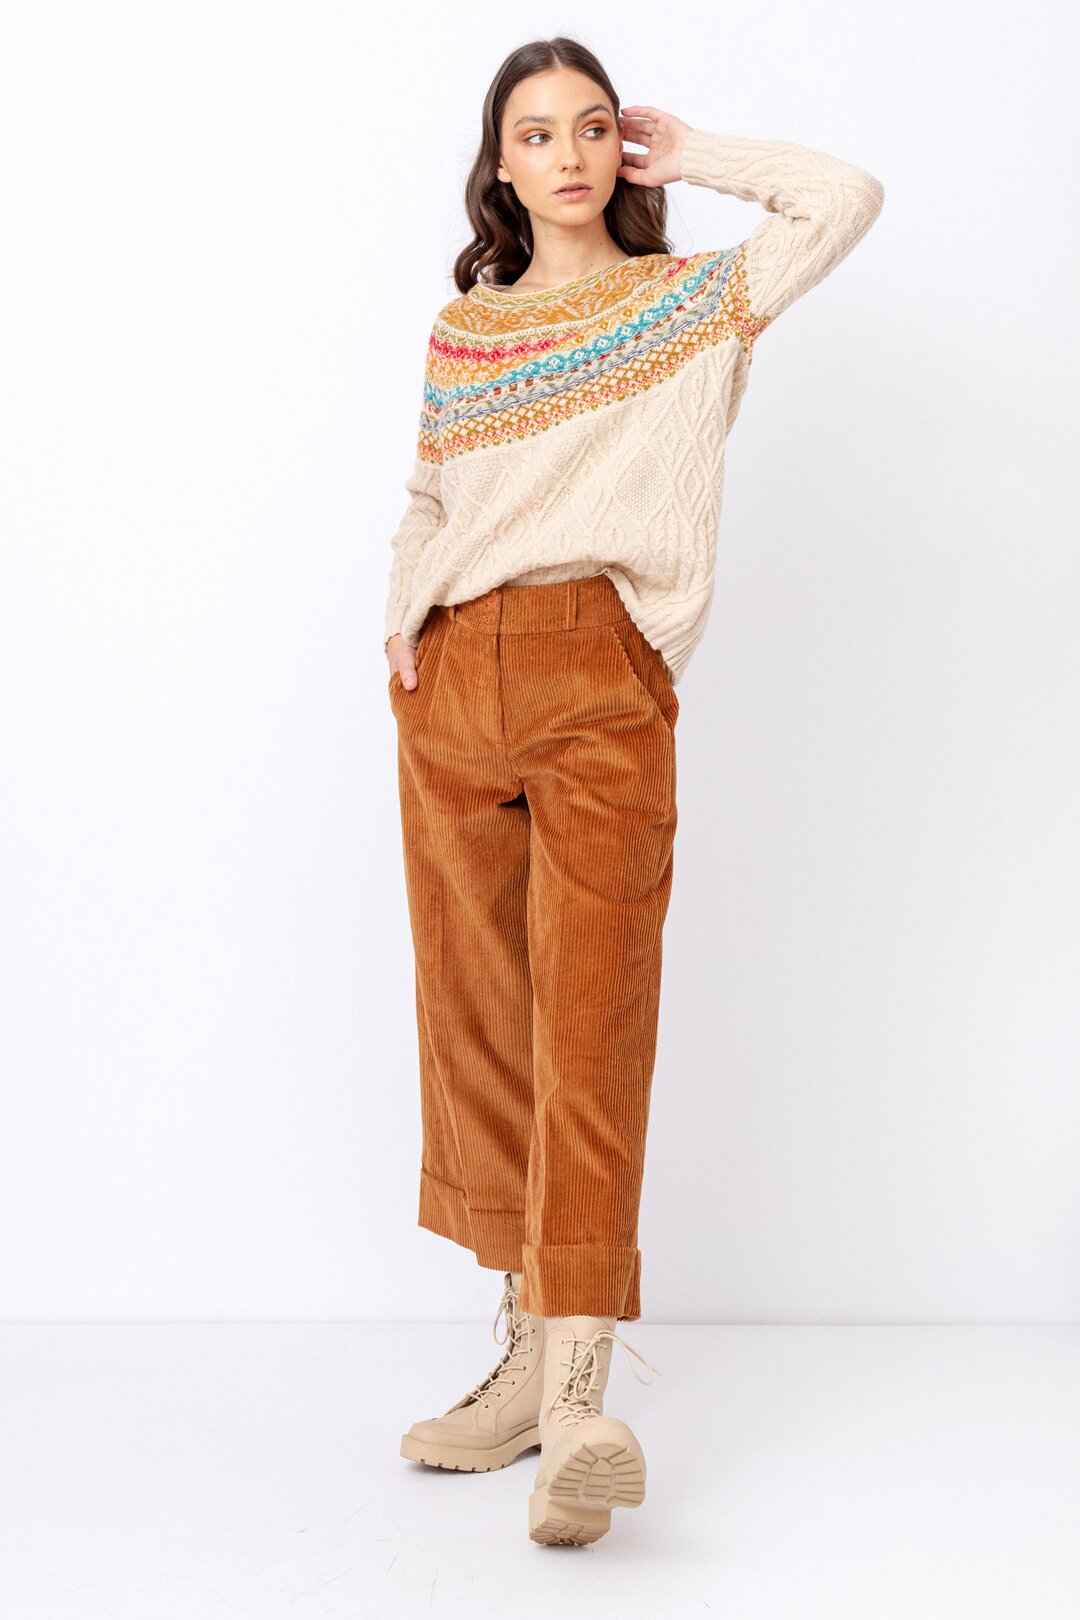 outfit-7c8a0646